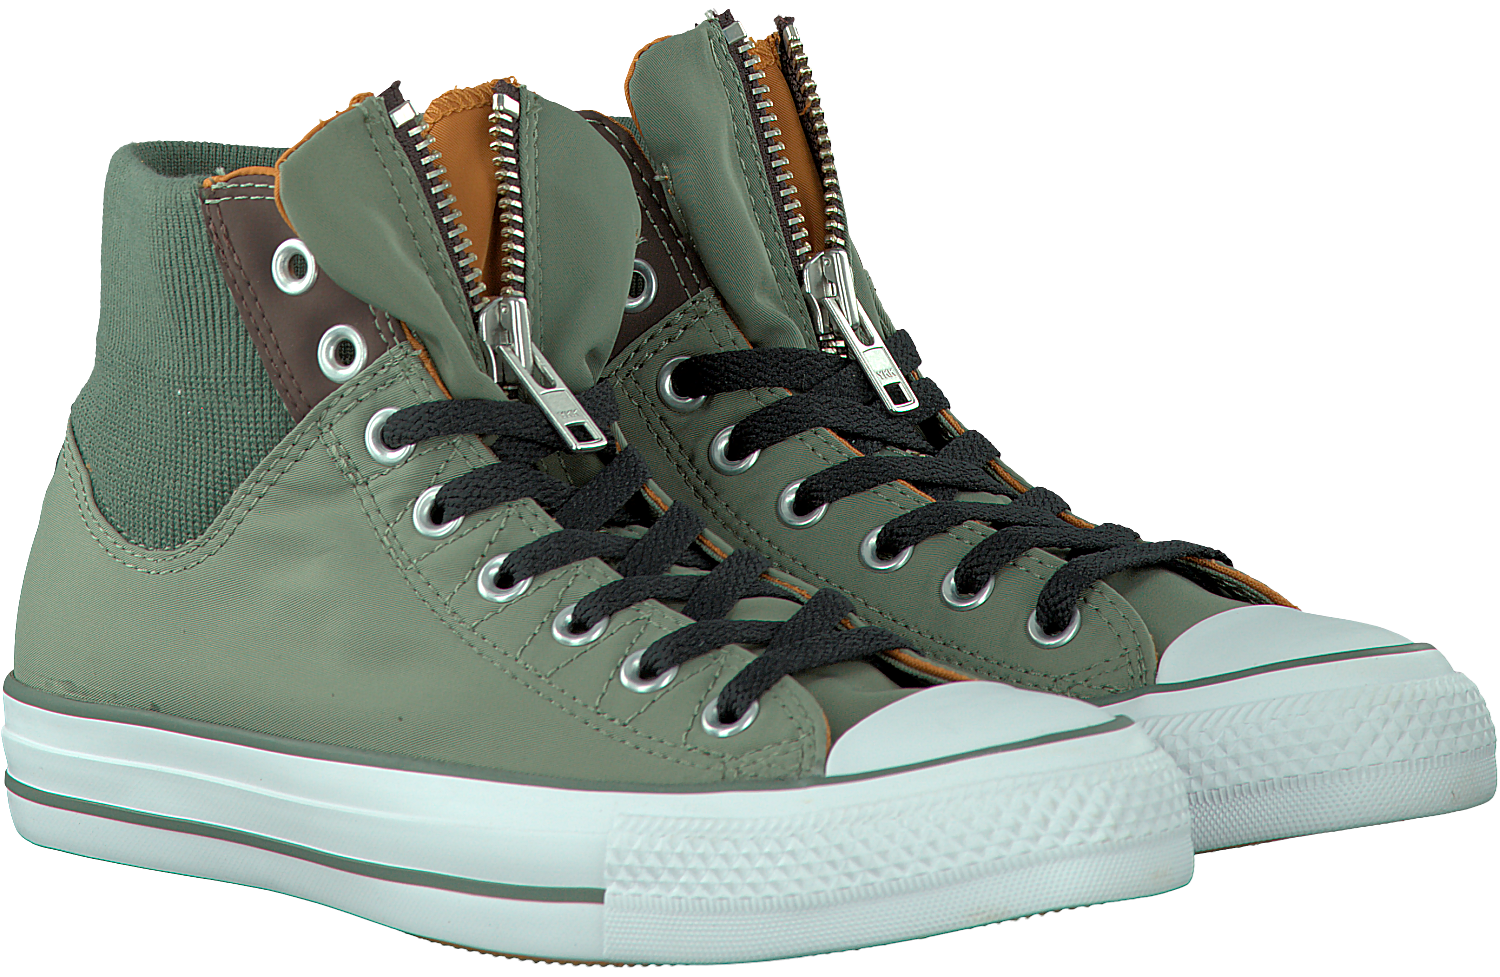 2083ab98ce1 Groene CONVERSE Sneakers CHUCK TAYLOR ALL STAR - large. Next